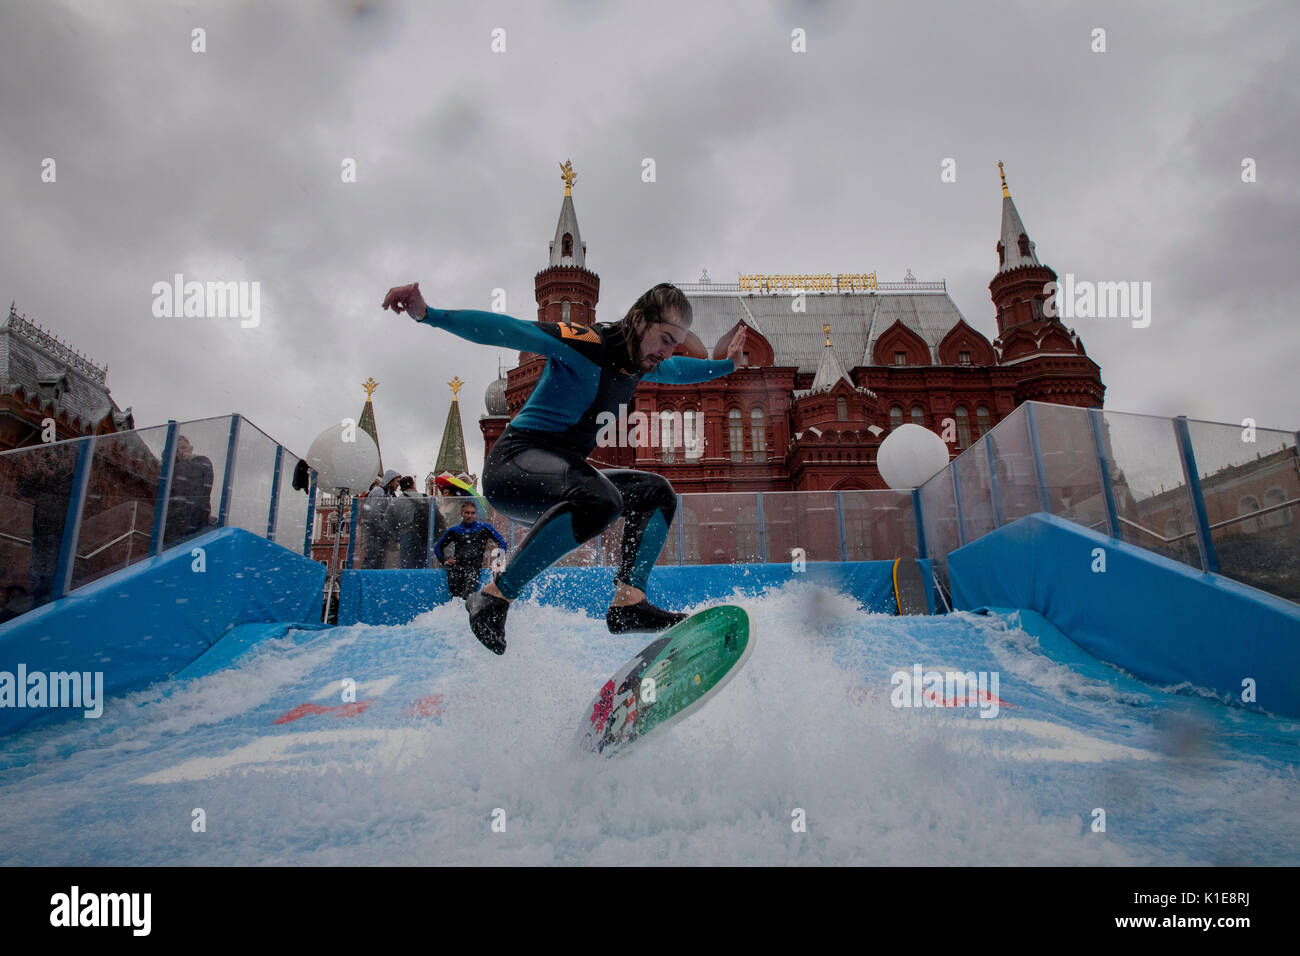 Moscow, Russia. 25th of August, 2017. A man jump on flowboard at front of the Red square in the center of Moscow, Russia Credit: Nikolay Vinokurov/Alamy Live News - Stock Image